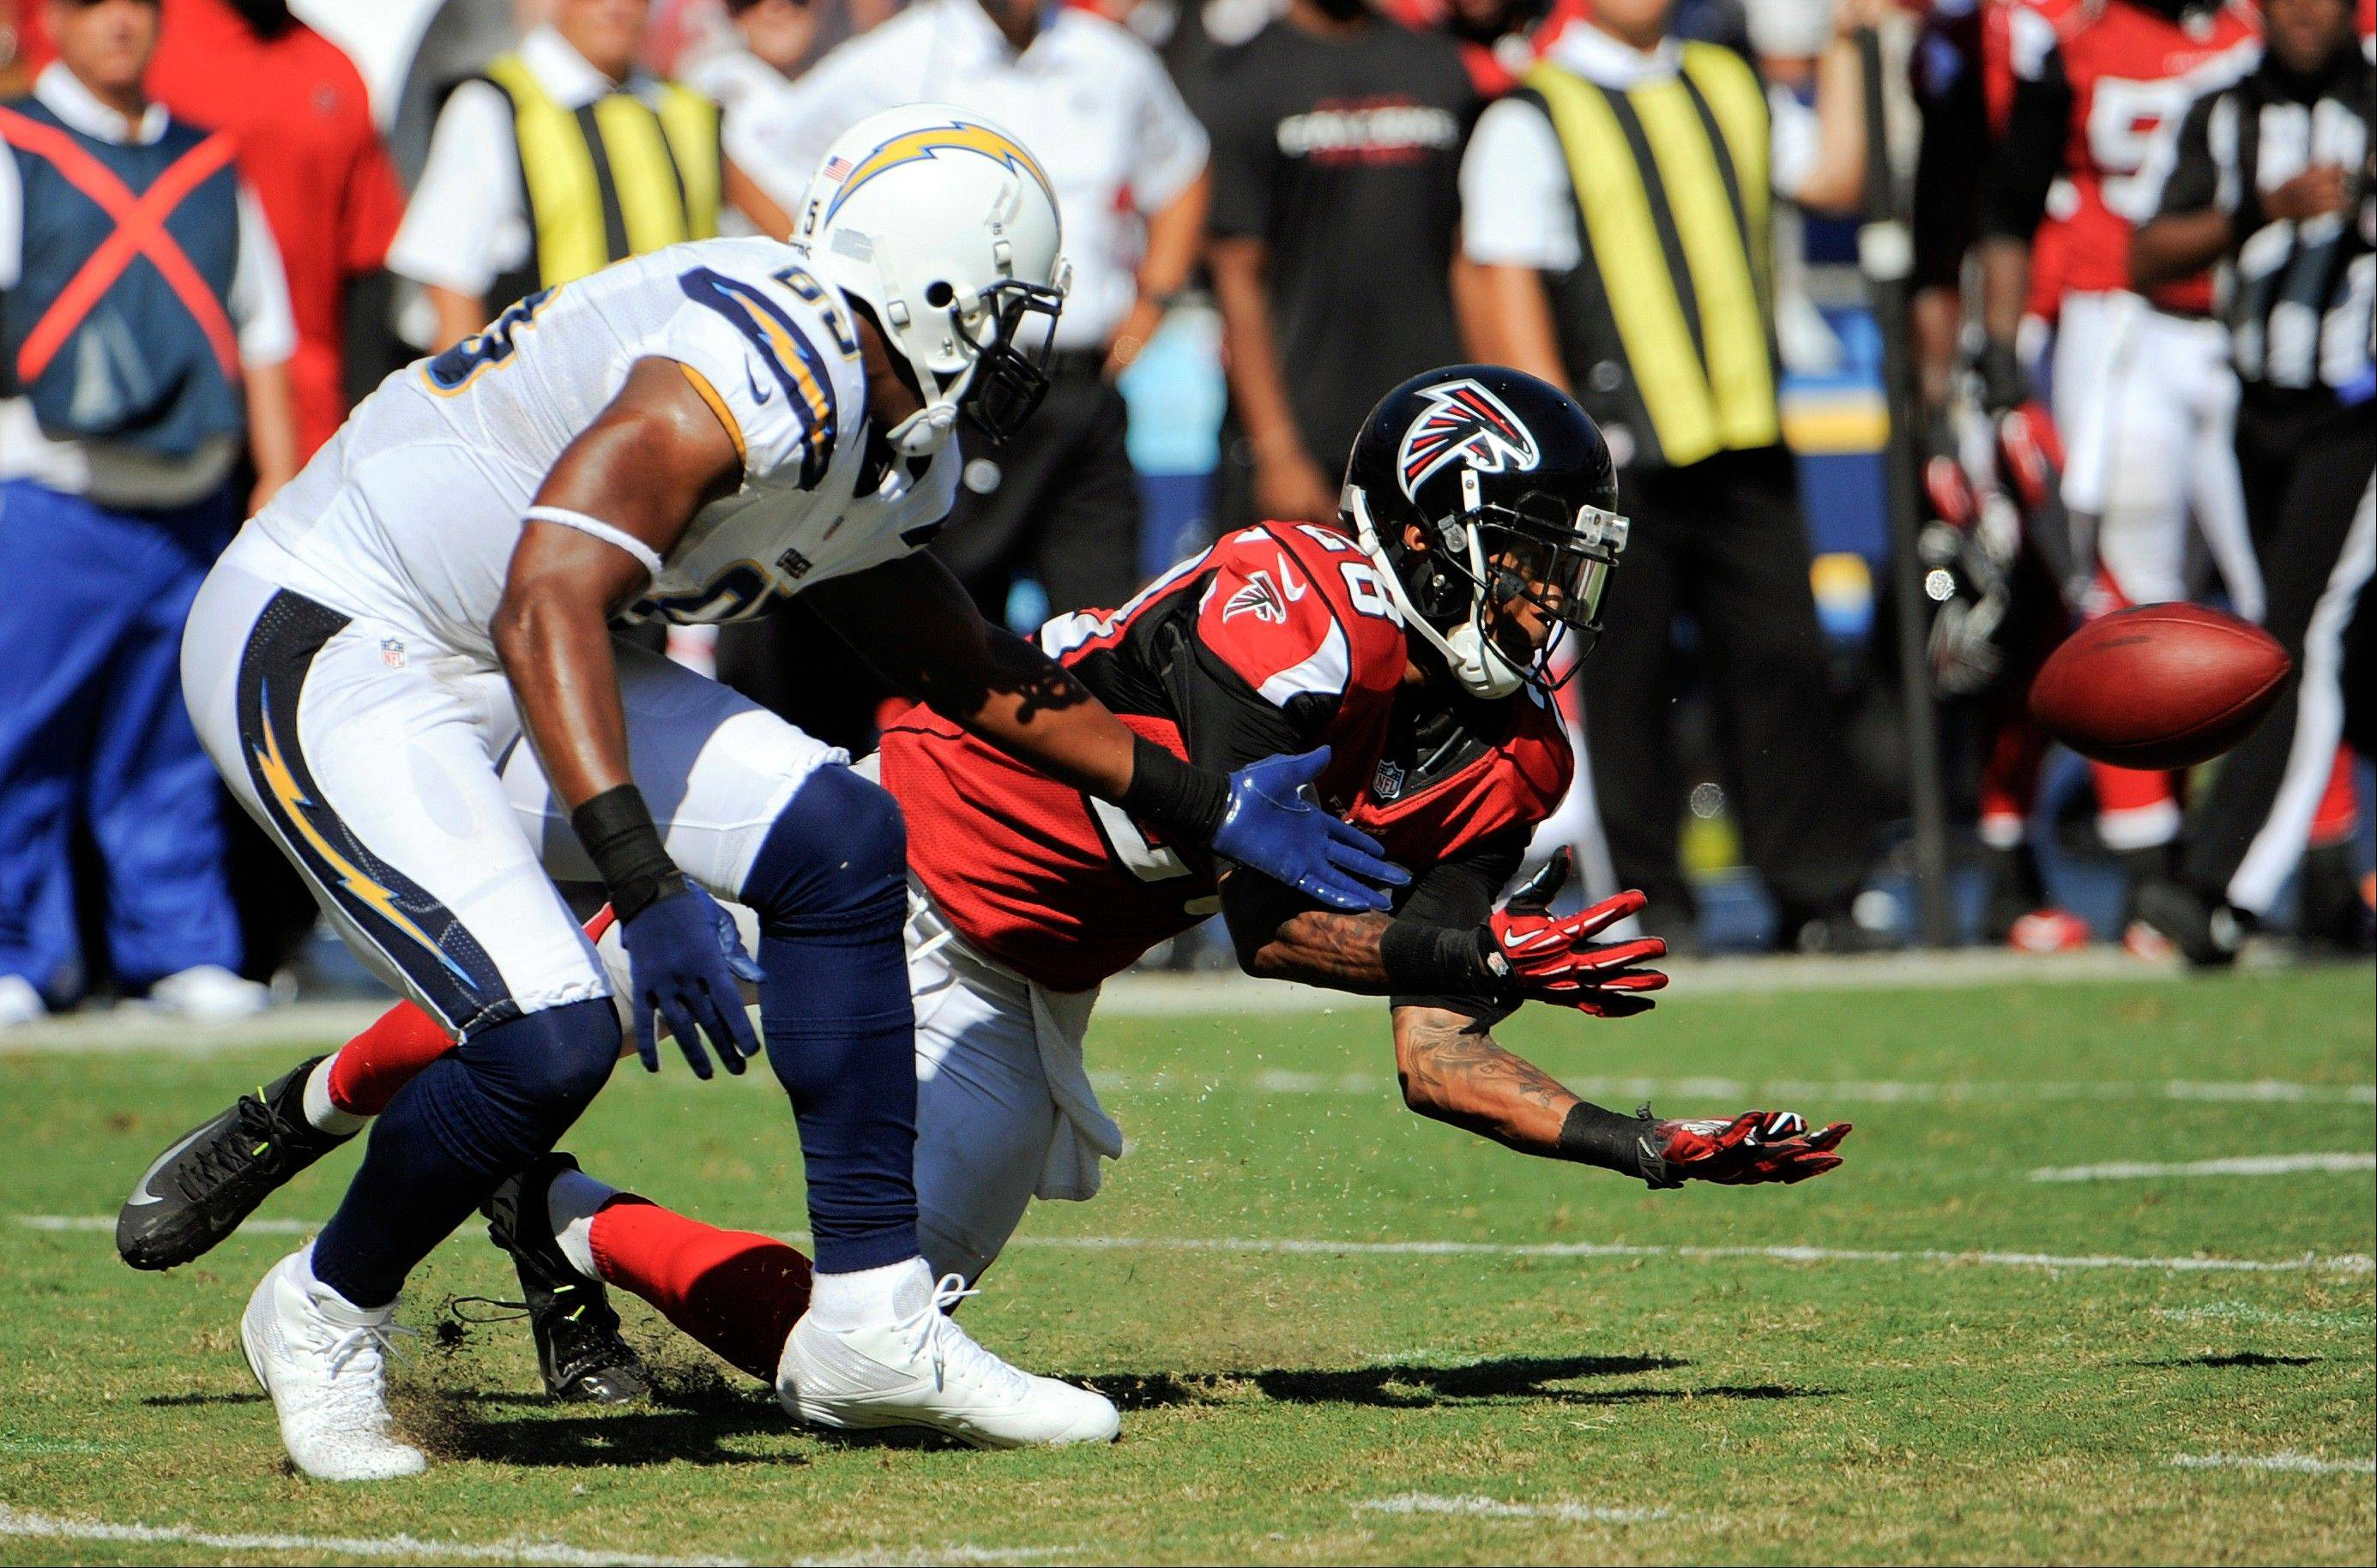 Atlanta Falcons free safety Thomas DeCoud intercepts a pass intended for San Diego Chargers tight end Antonio Gates during the second half Sunday in San Diego.